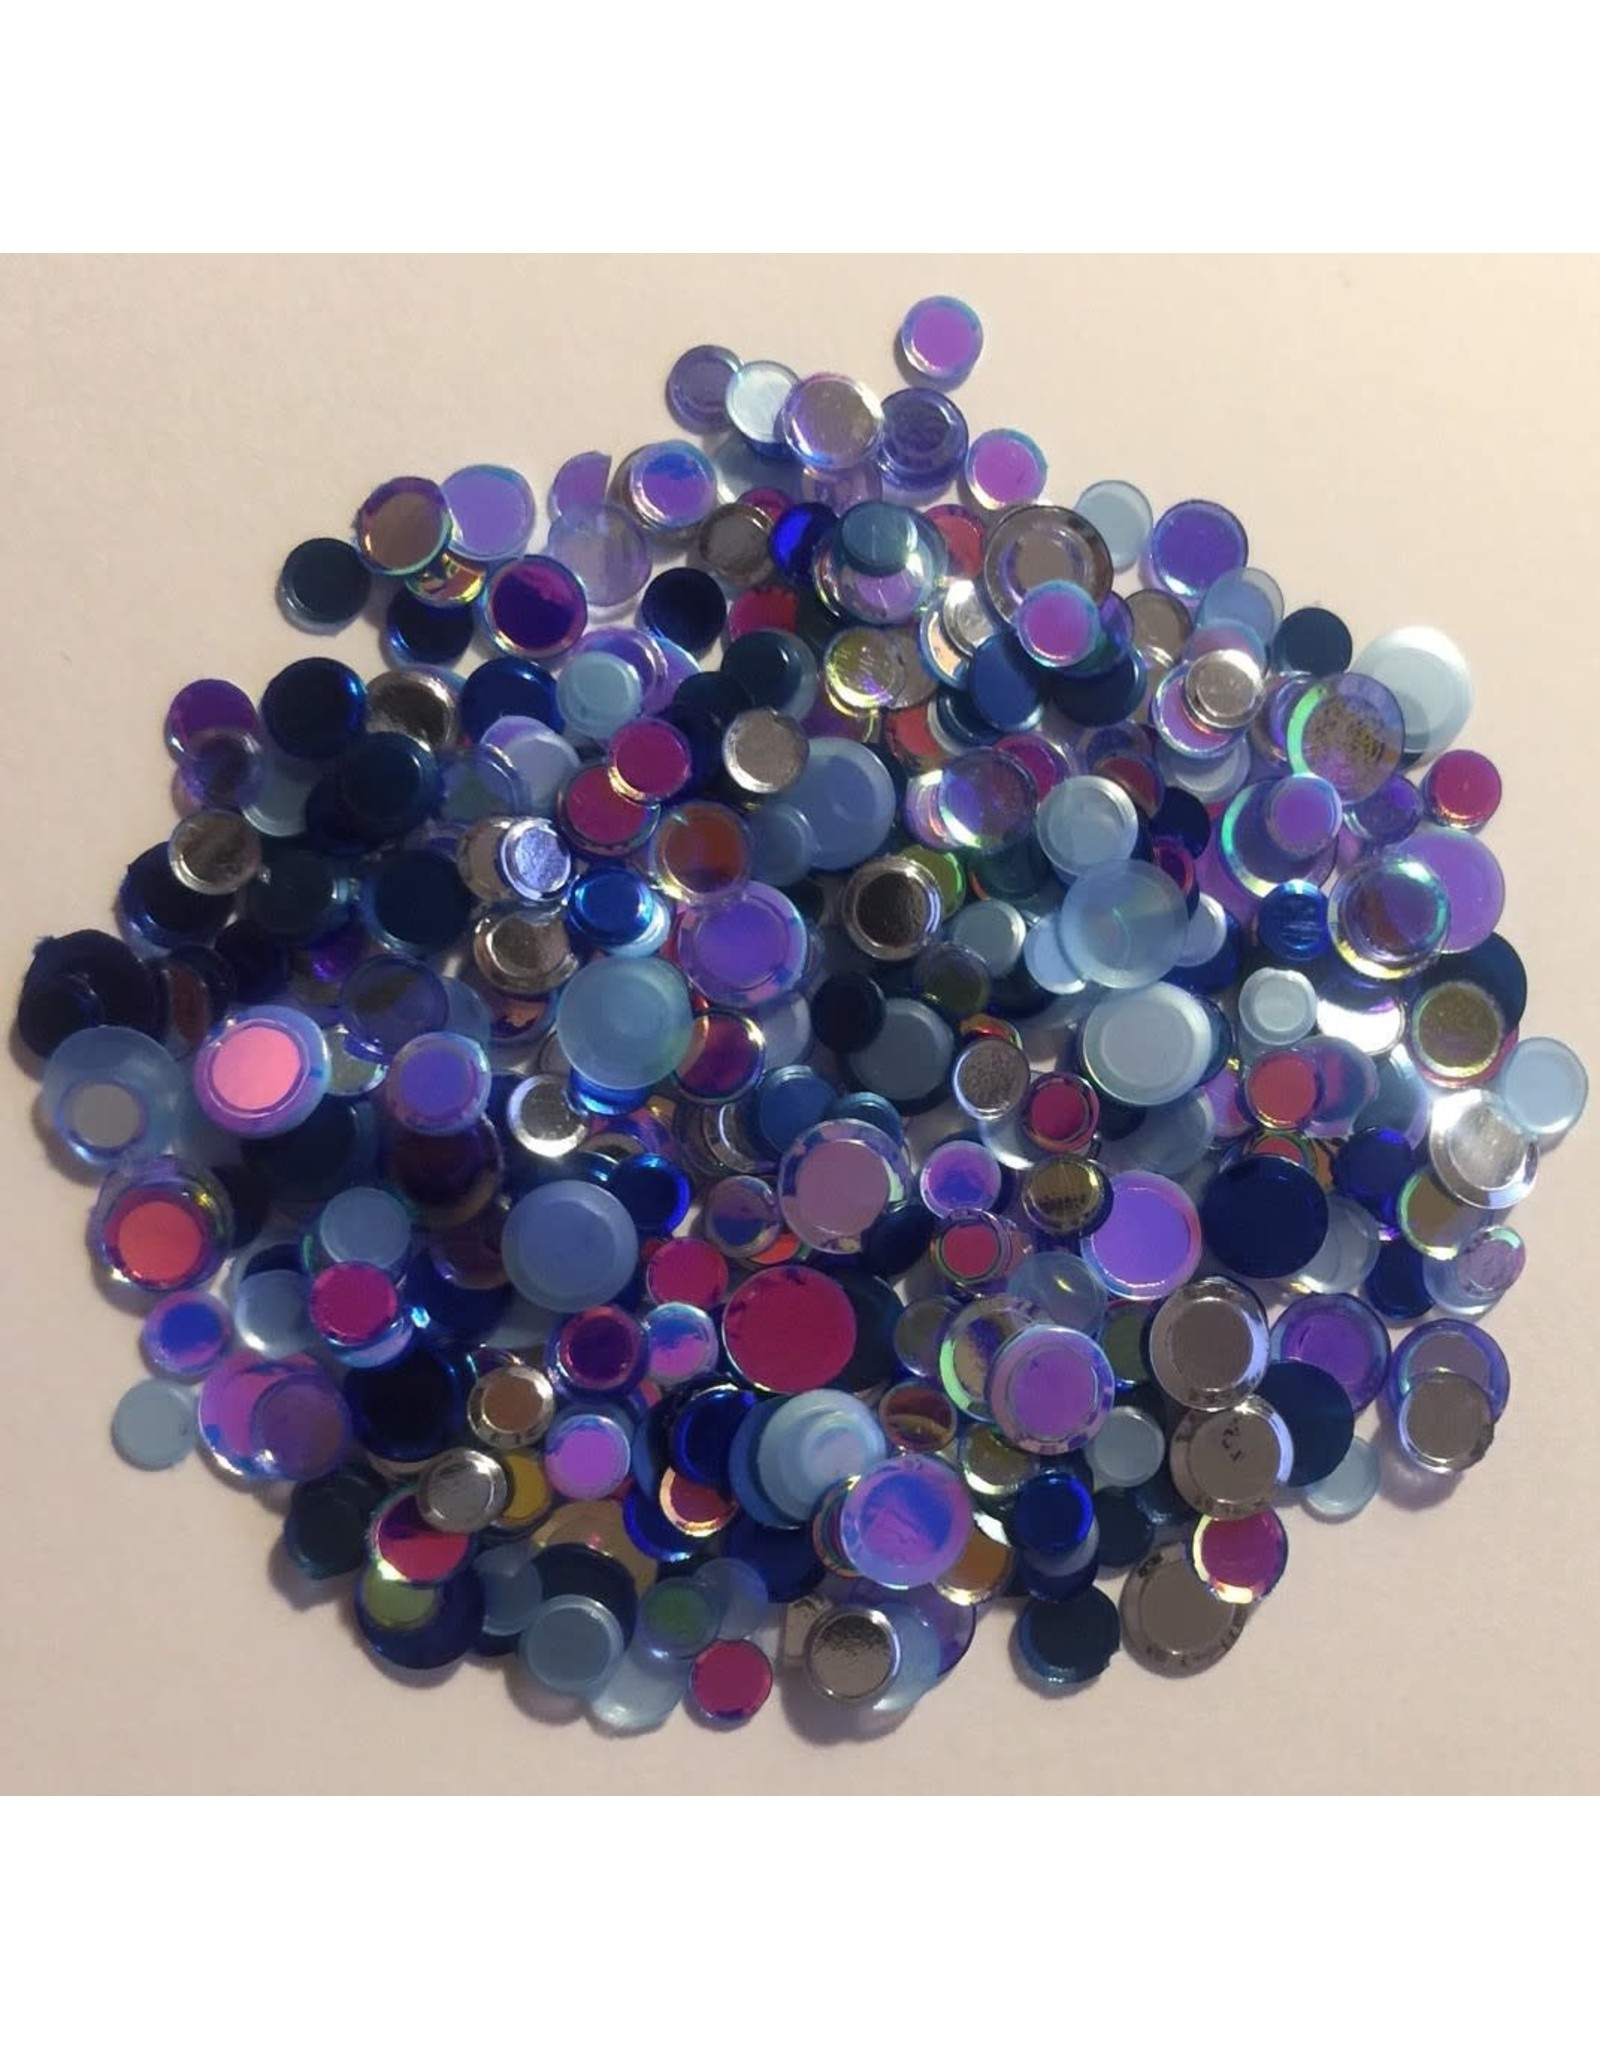 Paws-Itively Pawsome Designs Shaker Confetti - I've Got the Blues